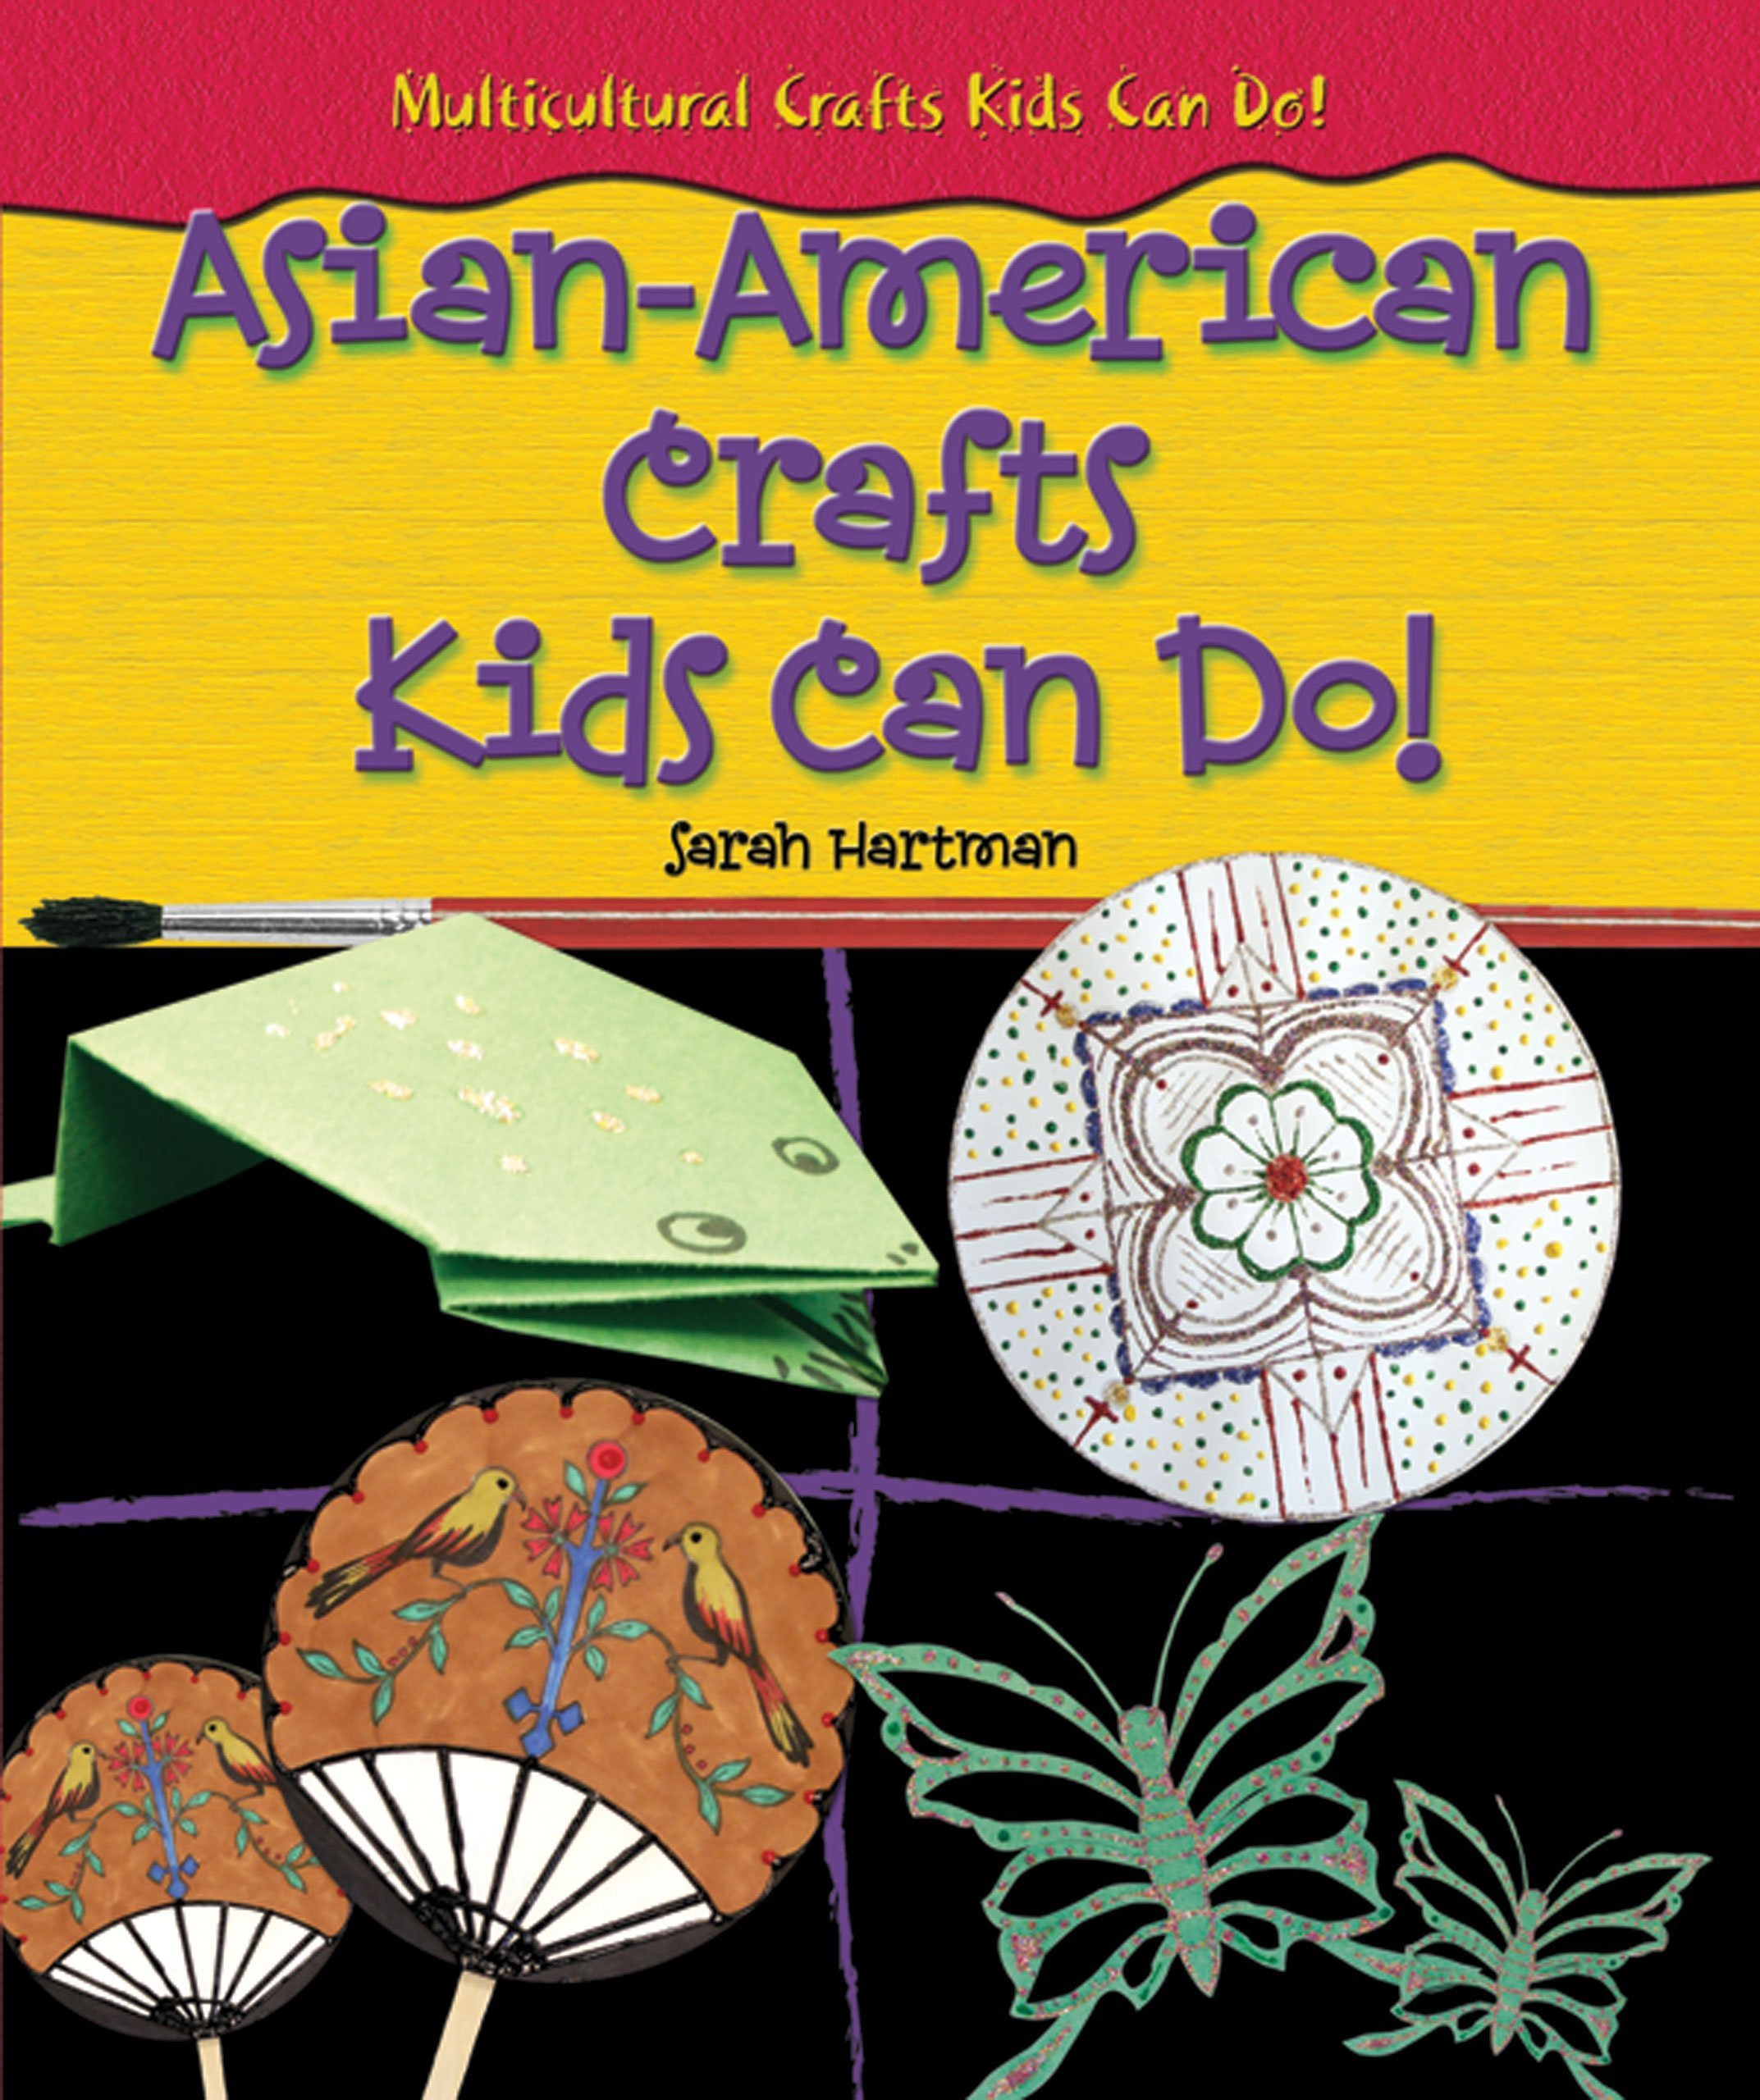 Asian American Crafts Kids Can Do Multicultural Crafts Kids Can Do